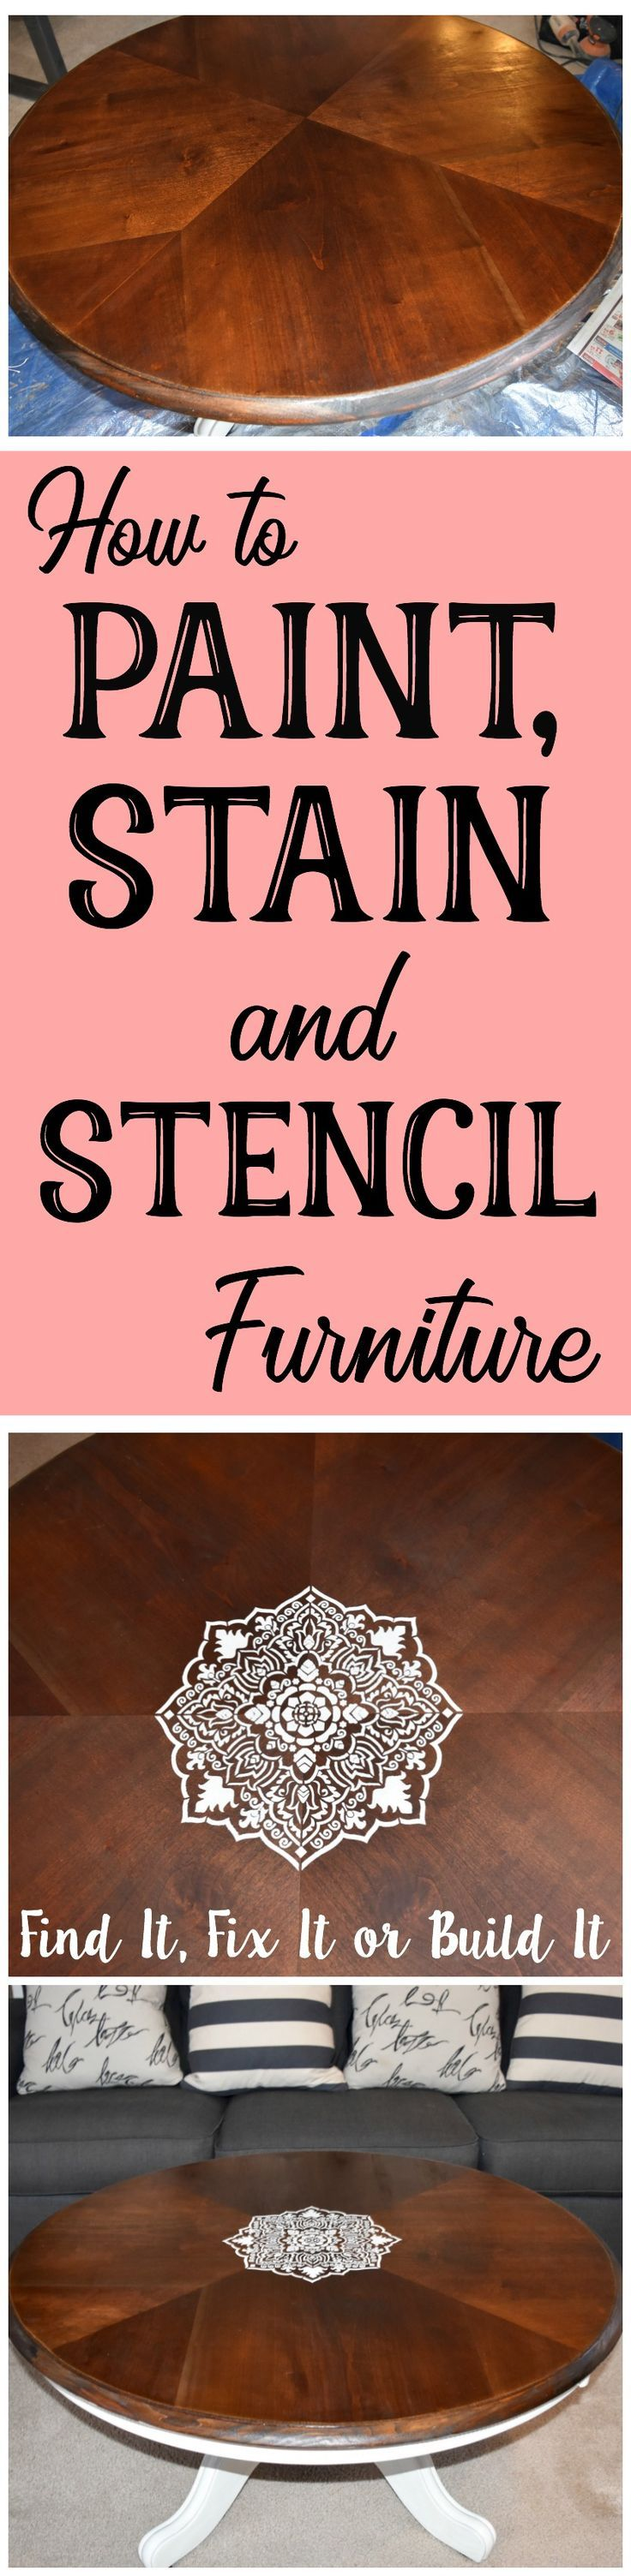 How to remove original finish on furniture. How to stain furniture. Paint a coffee table. DIY stencil. Add a stencil to furniture.